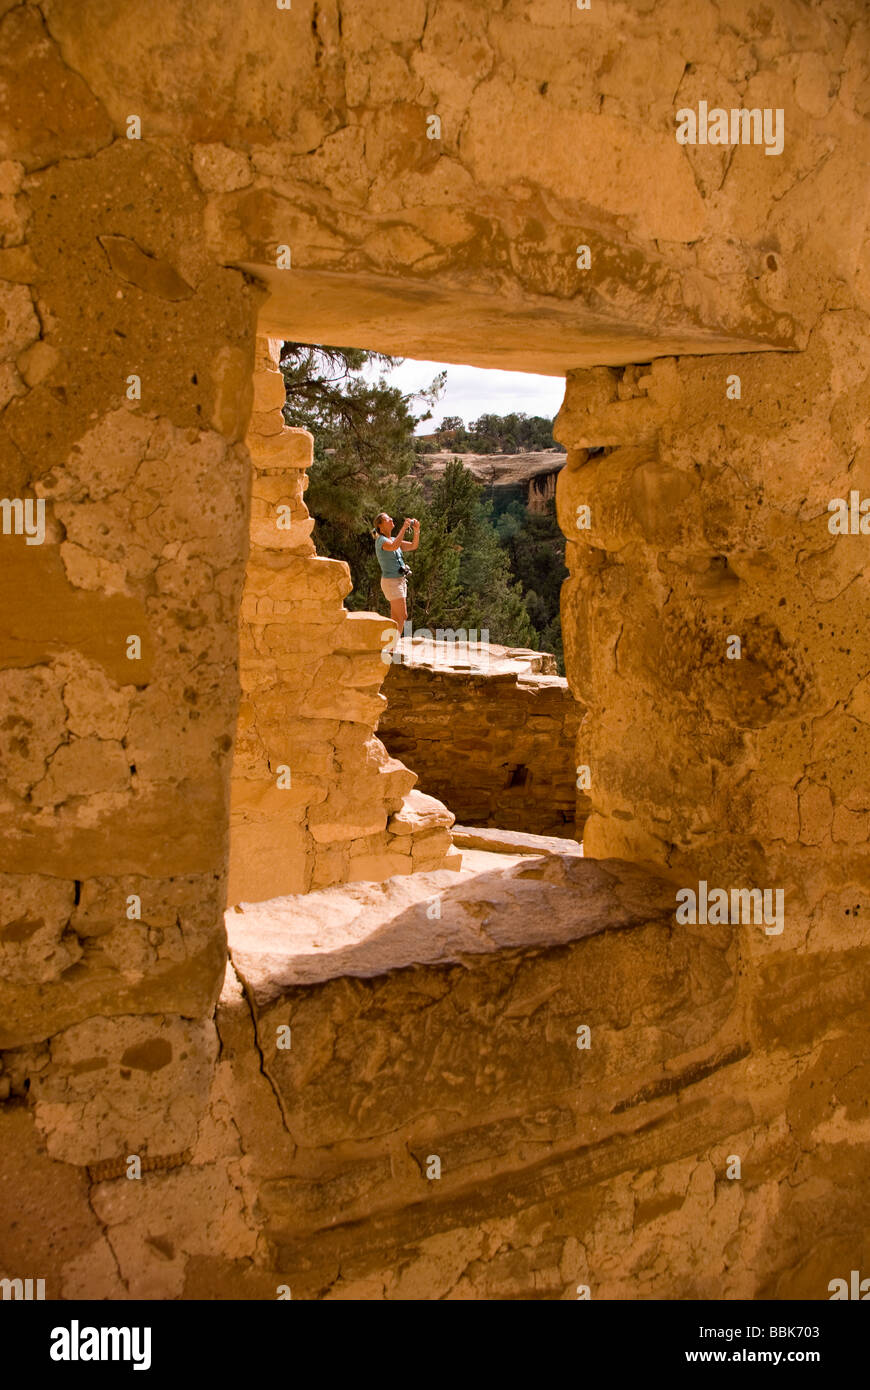 USA Colorado Cortez Mesa Verde National Park Cliff Palace tourist photographing 12 century ancestral puebloan cliff - Stock Image